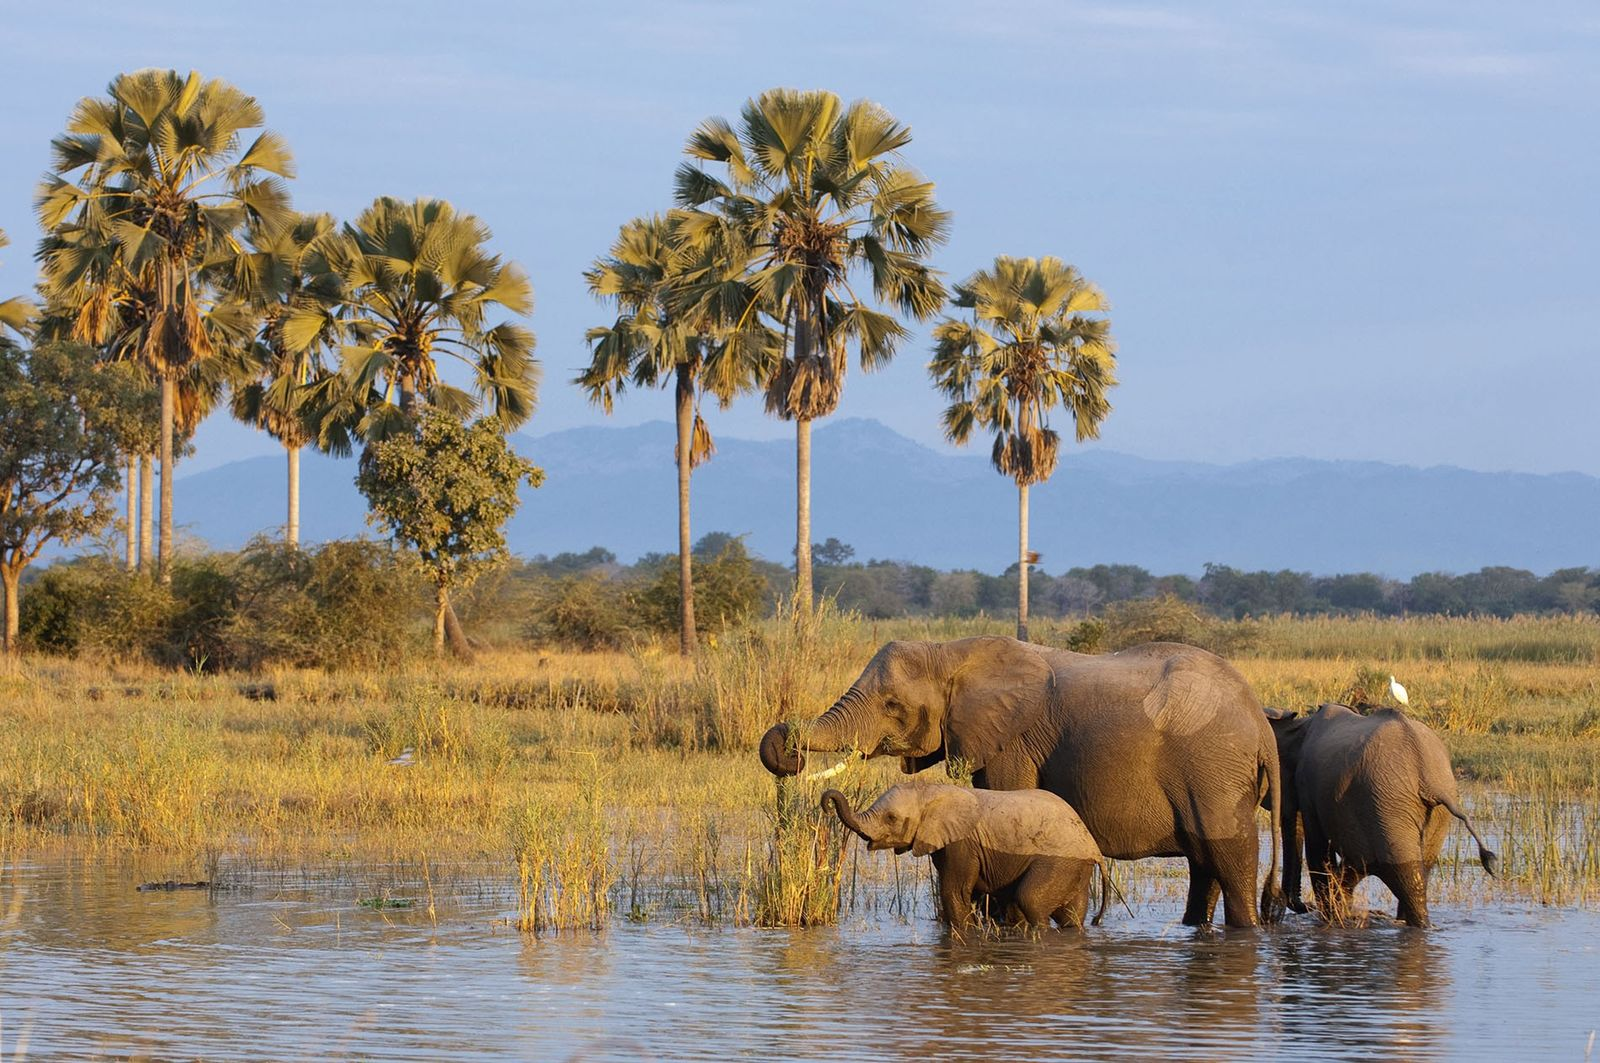 Elephants in the Shire River, Liwonde National Park